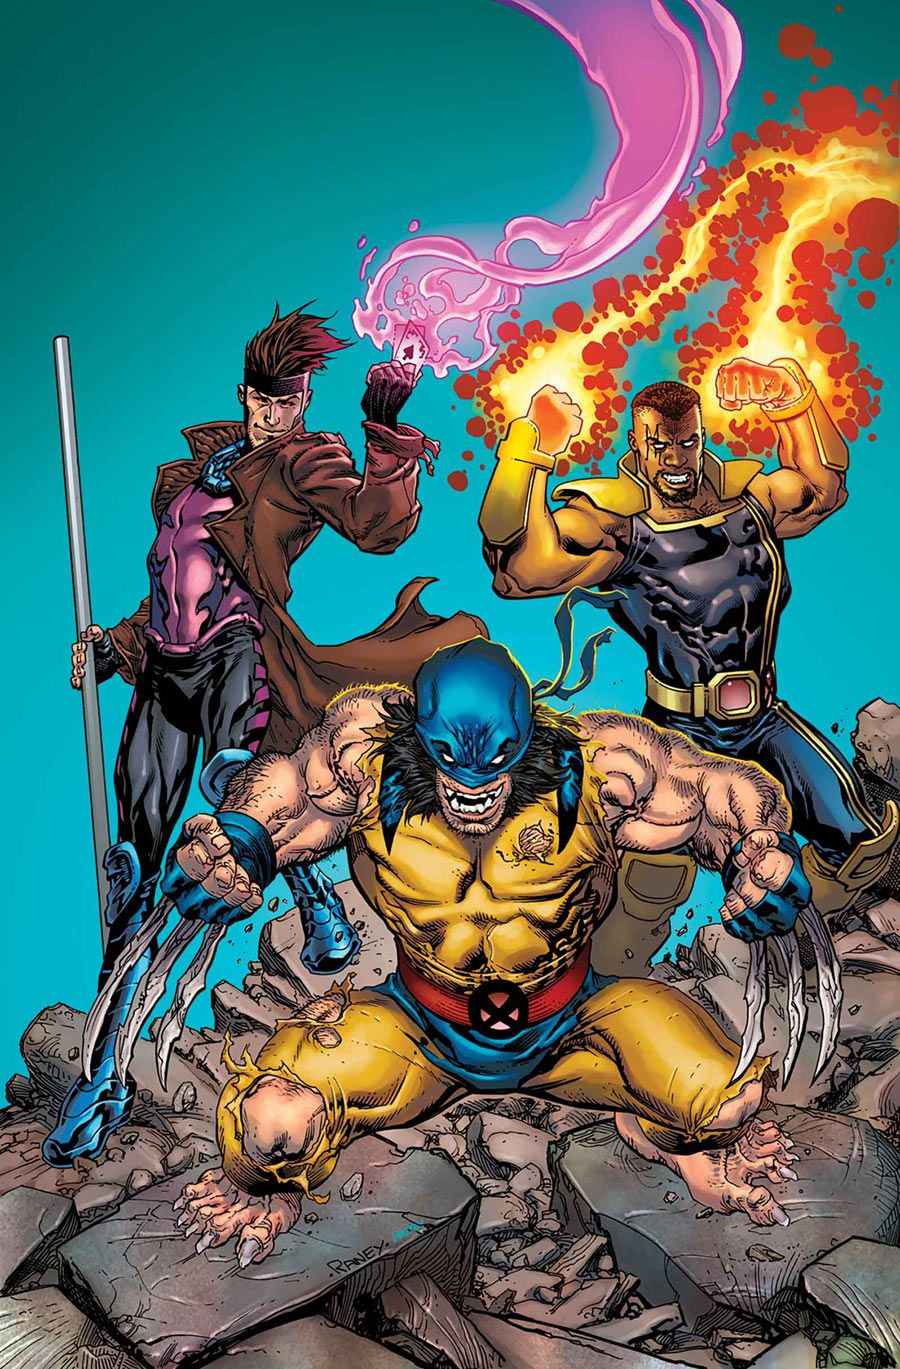 Images for : EXCLUSIVE: Marvel's X-Men Solicitations for December 2015 - Comic Book Resources